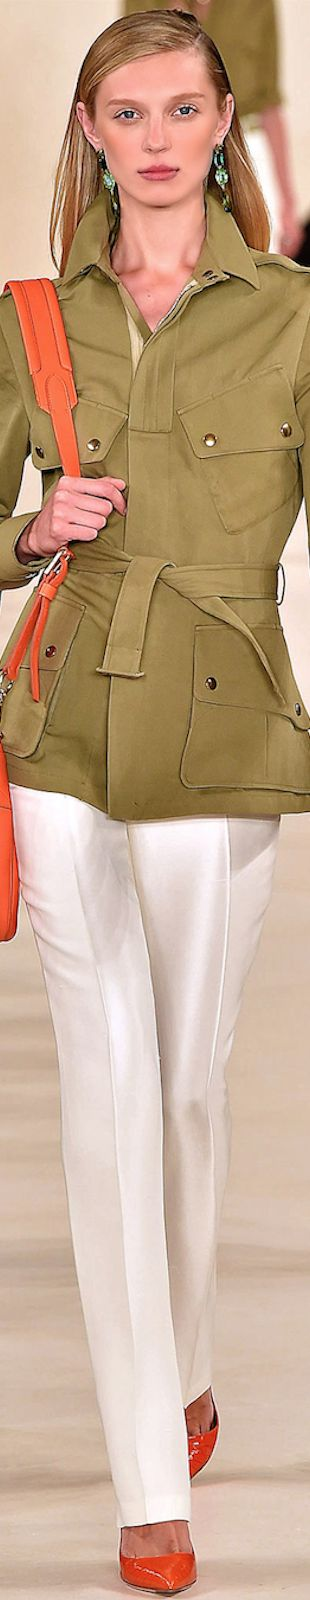 The WWII paratrooper look - only cuter    LOOKandLOVEwithLOLO~ RALPH LAUREN SPRING 2015 RTW